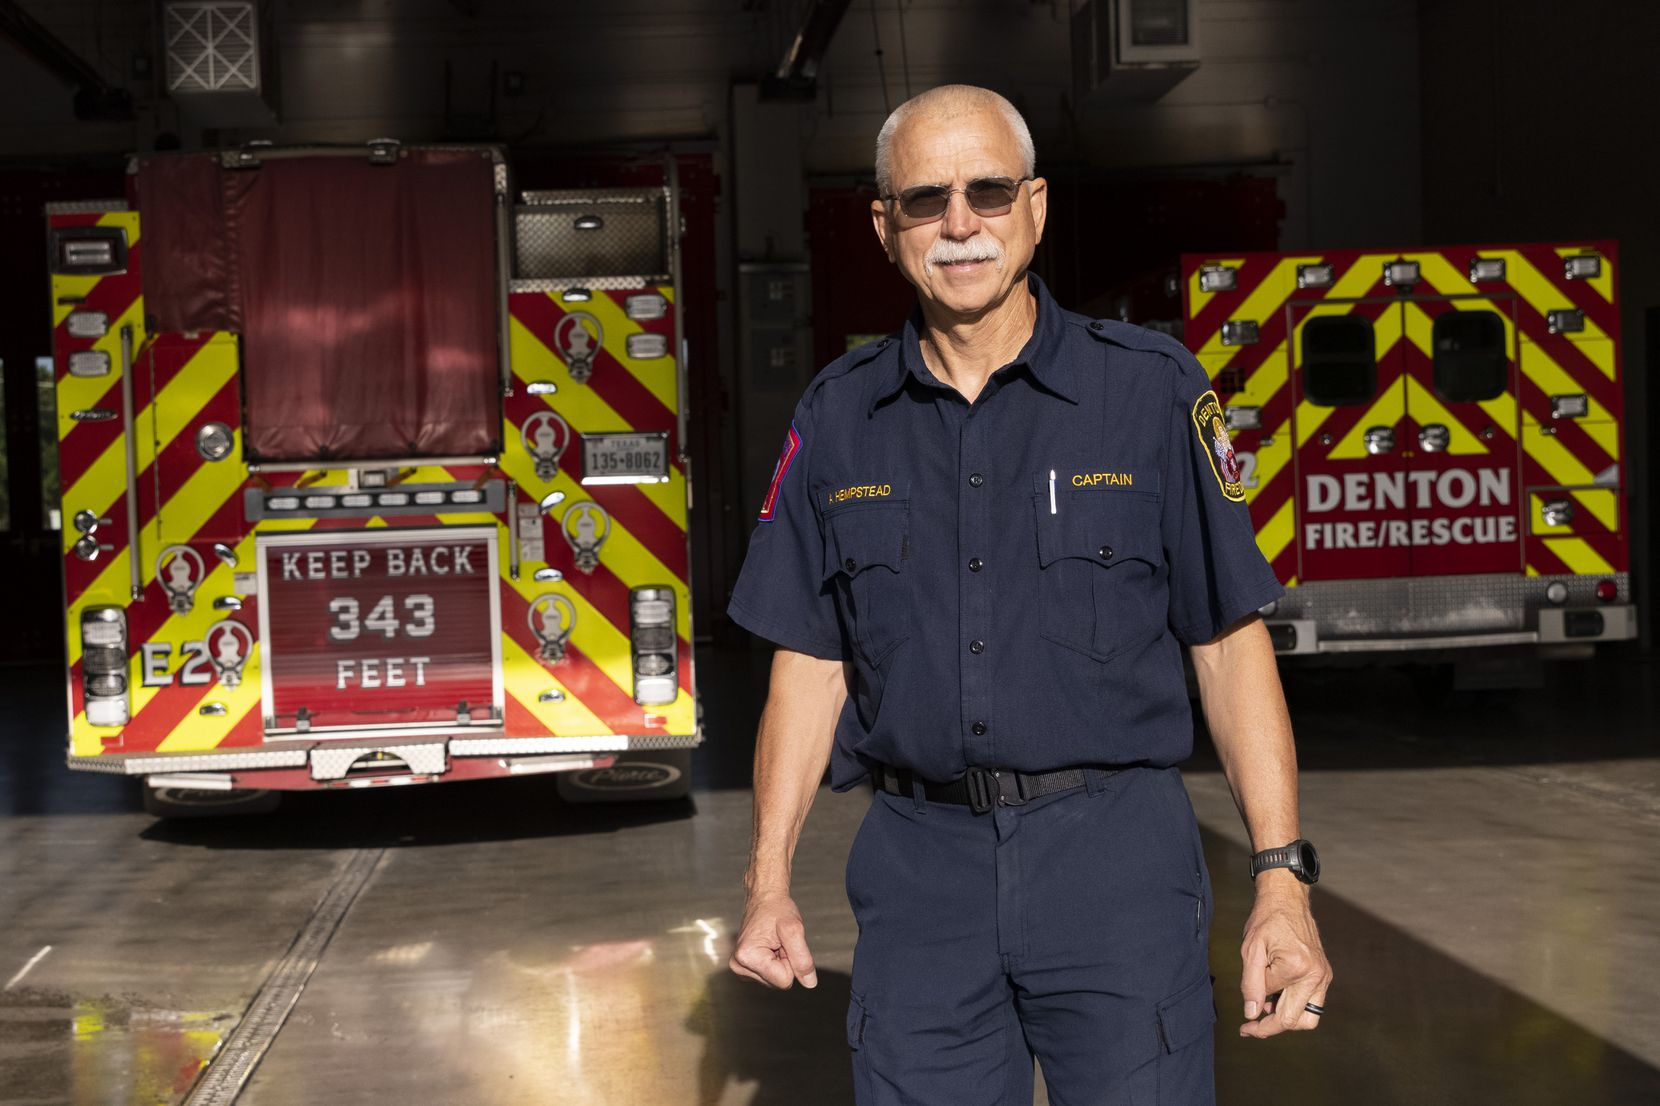 Capt. Stanley Hempstead poses for a photo on Monday, Aug. 30, 2021, at Denton City Fire Station 2 in Denton. Capt. Hempstead was part of a task force that responded to the World Trade Center on Sept. 16, 2001.